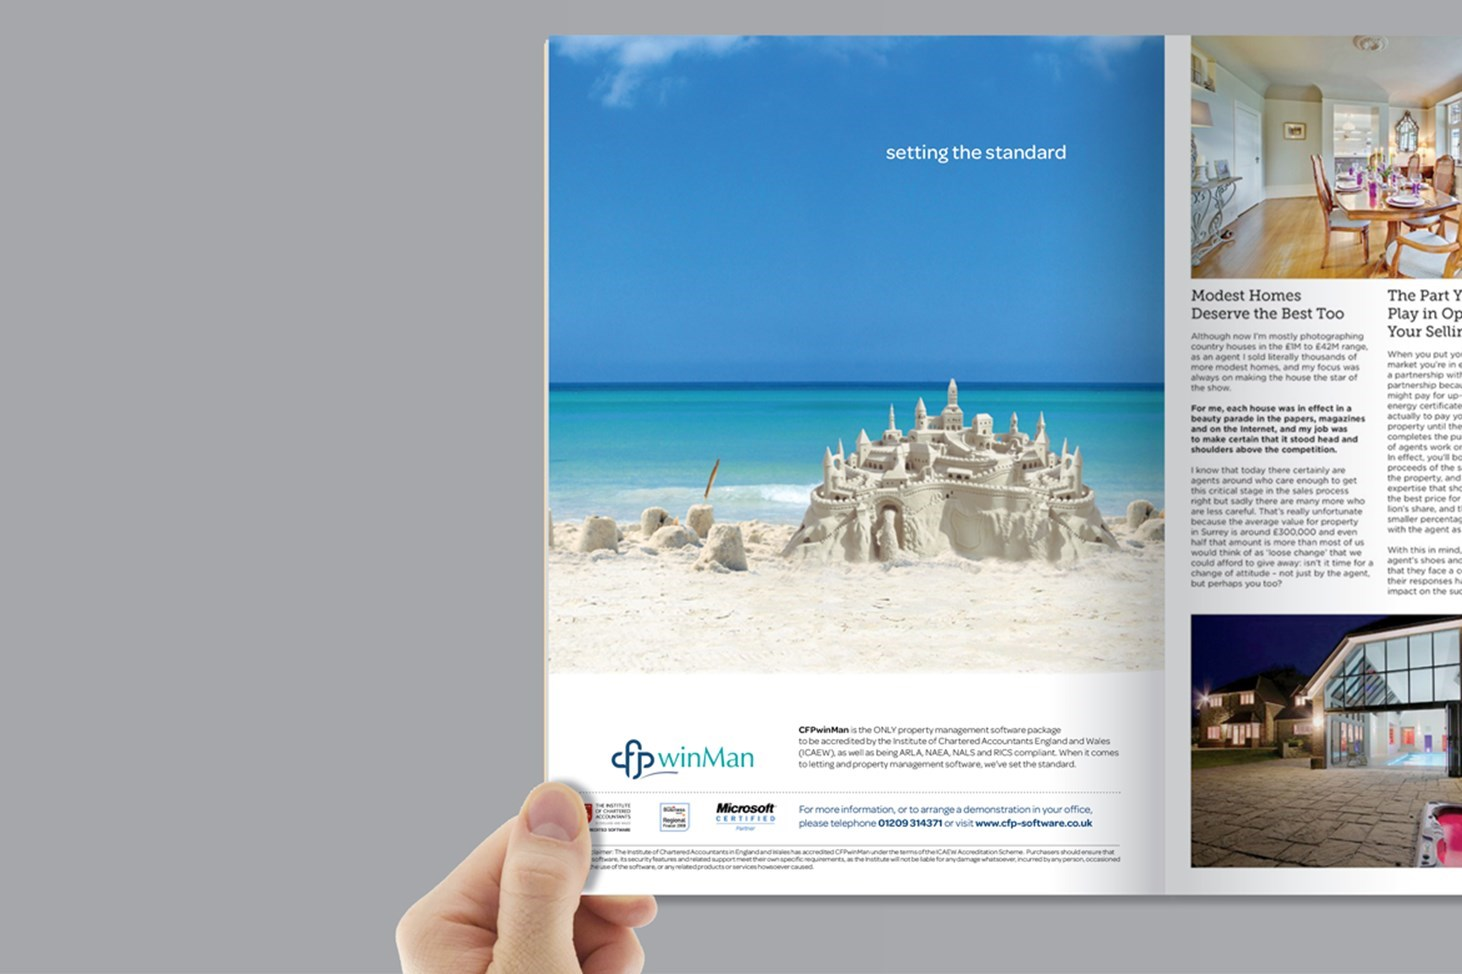 CFP Property lettings software, sand castle, blue skies and clear water, beach